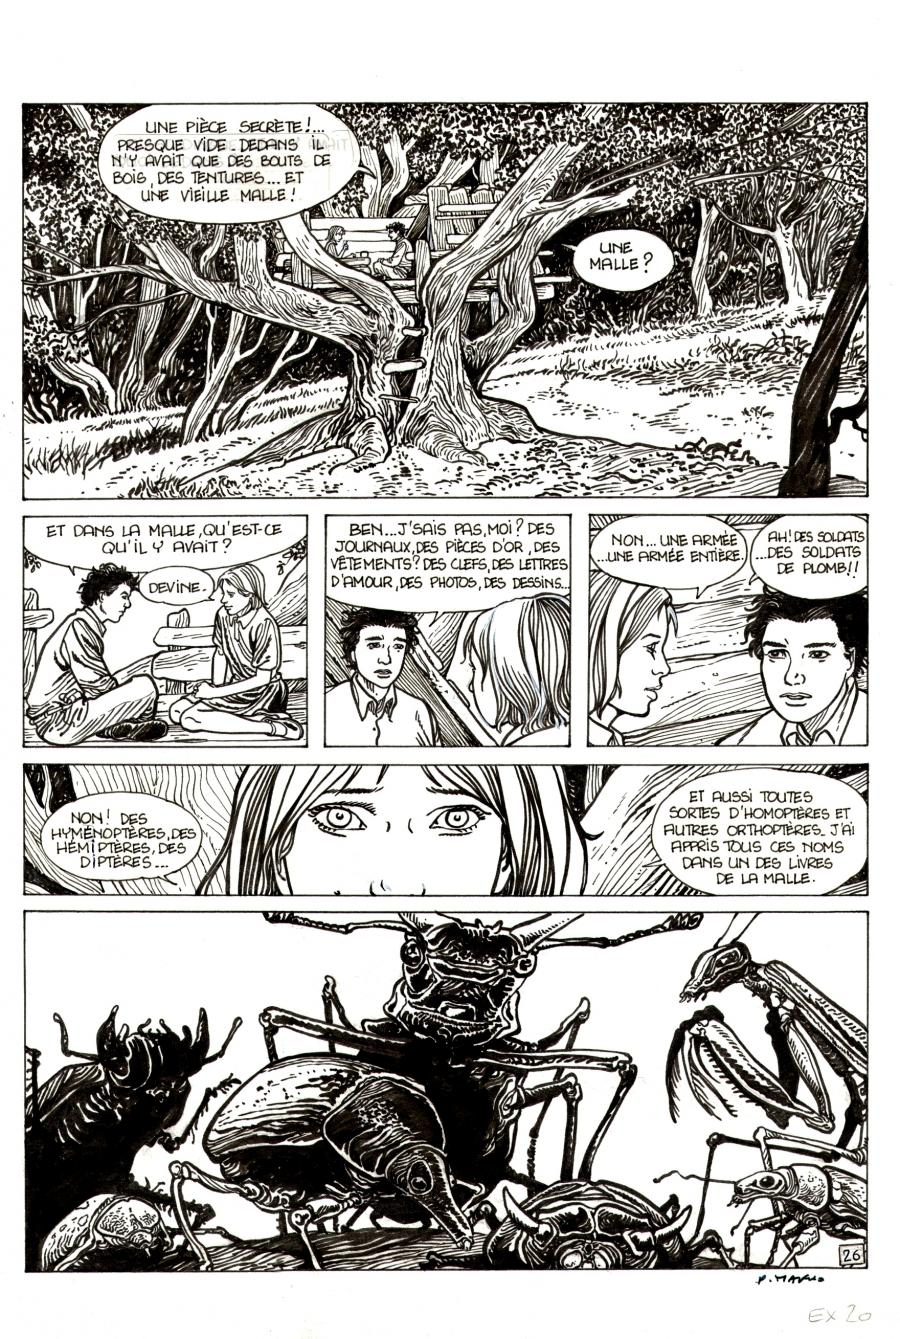 Pierre MAKYO's original comic art THE STORY OF EVERY DAY original page 26.